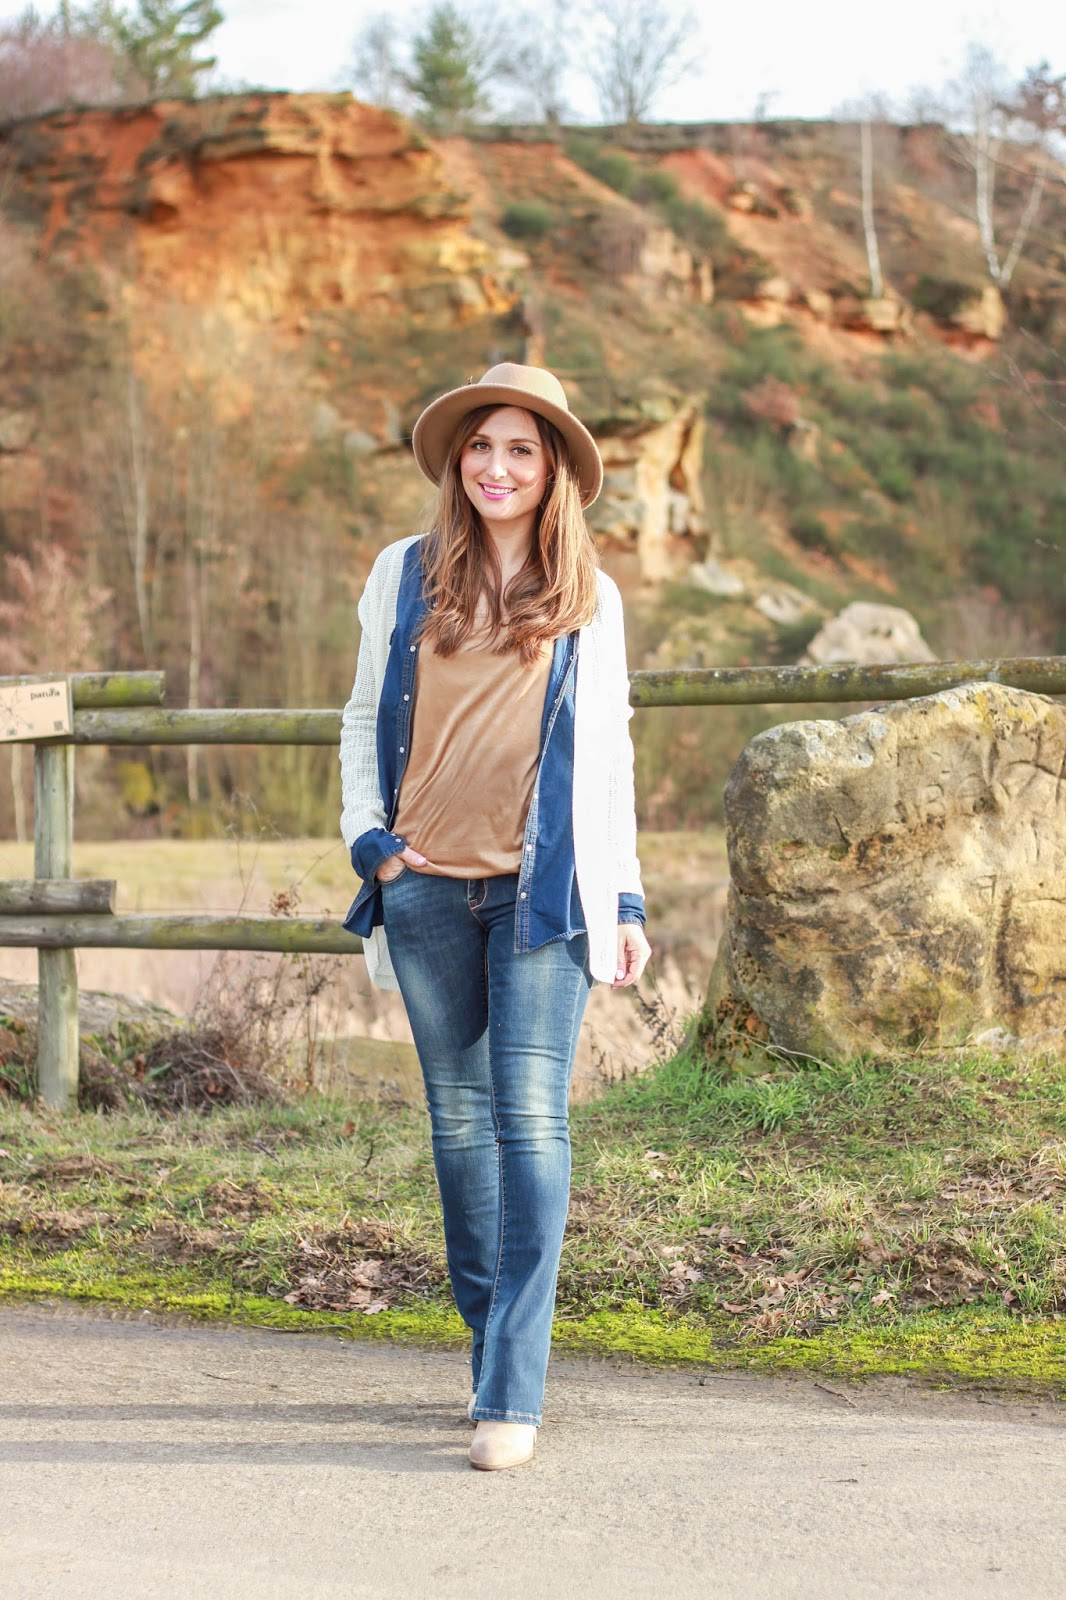 denim style - Country style - fashionstylebyjohanna - Outfitinspiration - Modeblogger - Fashionblogger aus Deutschland - German Fashionblogger